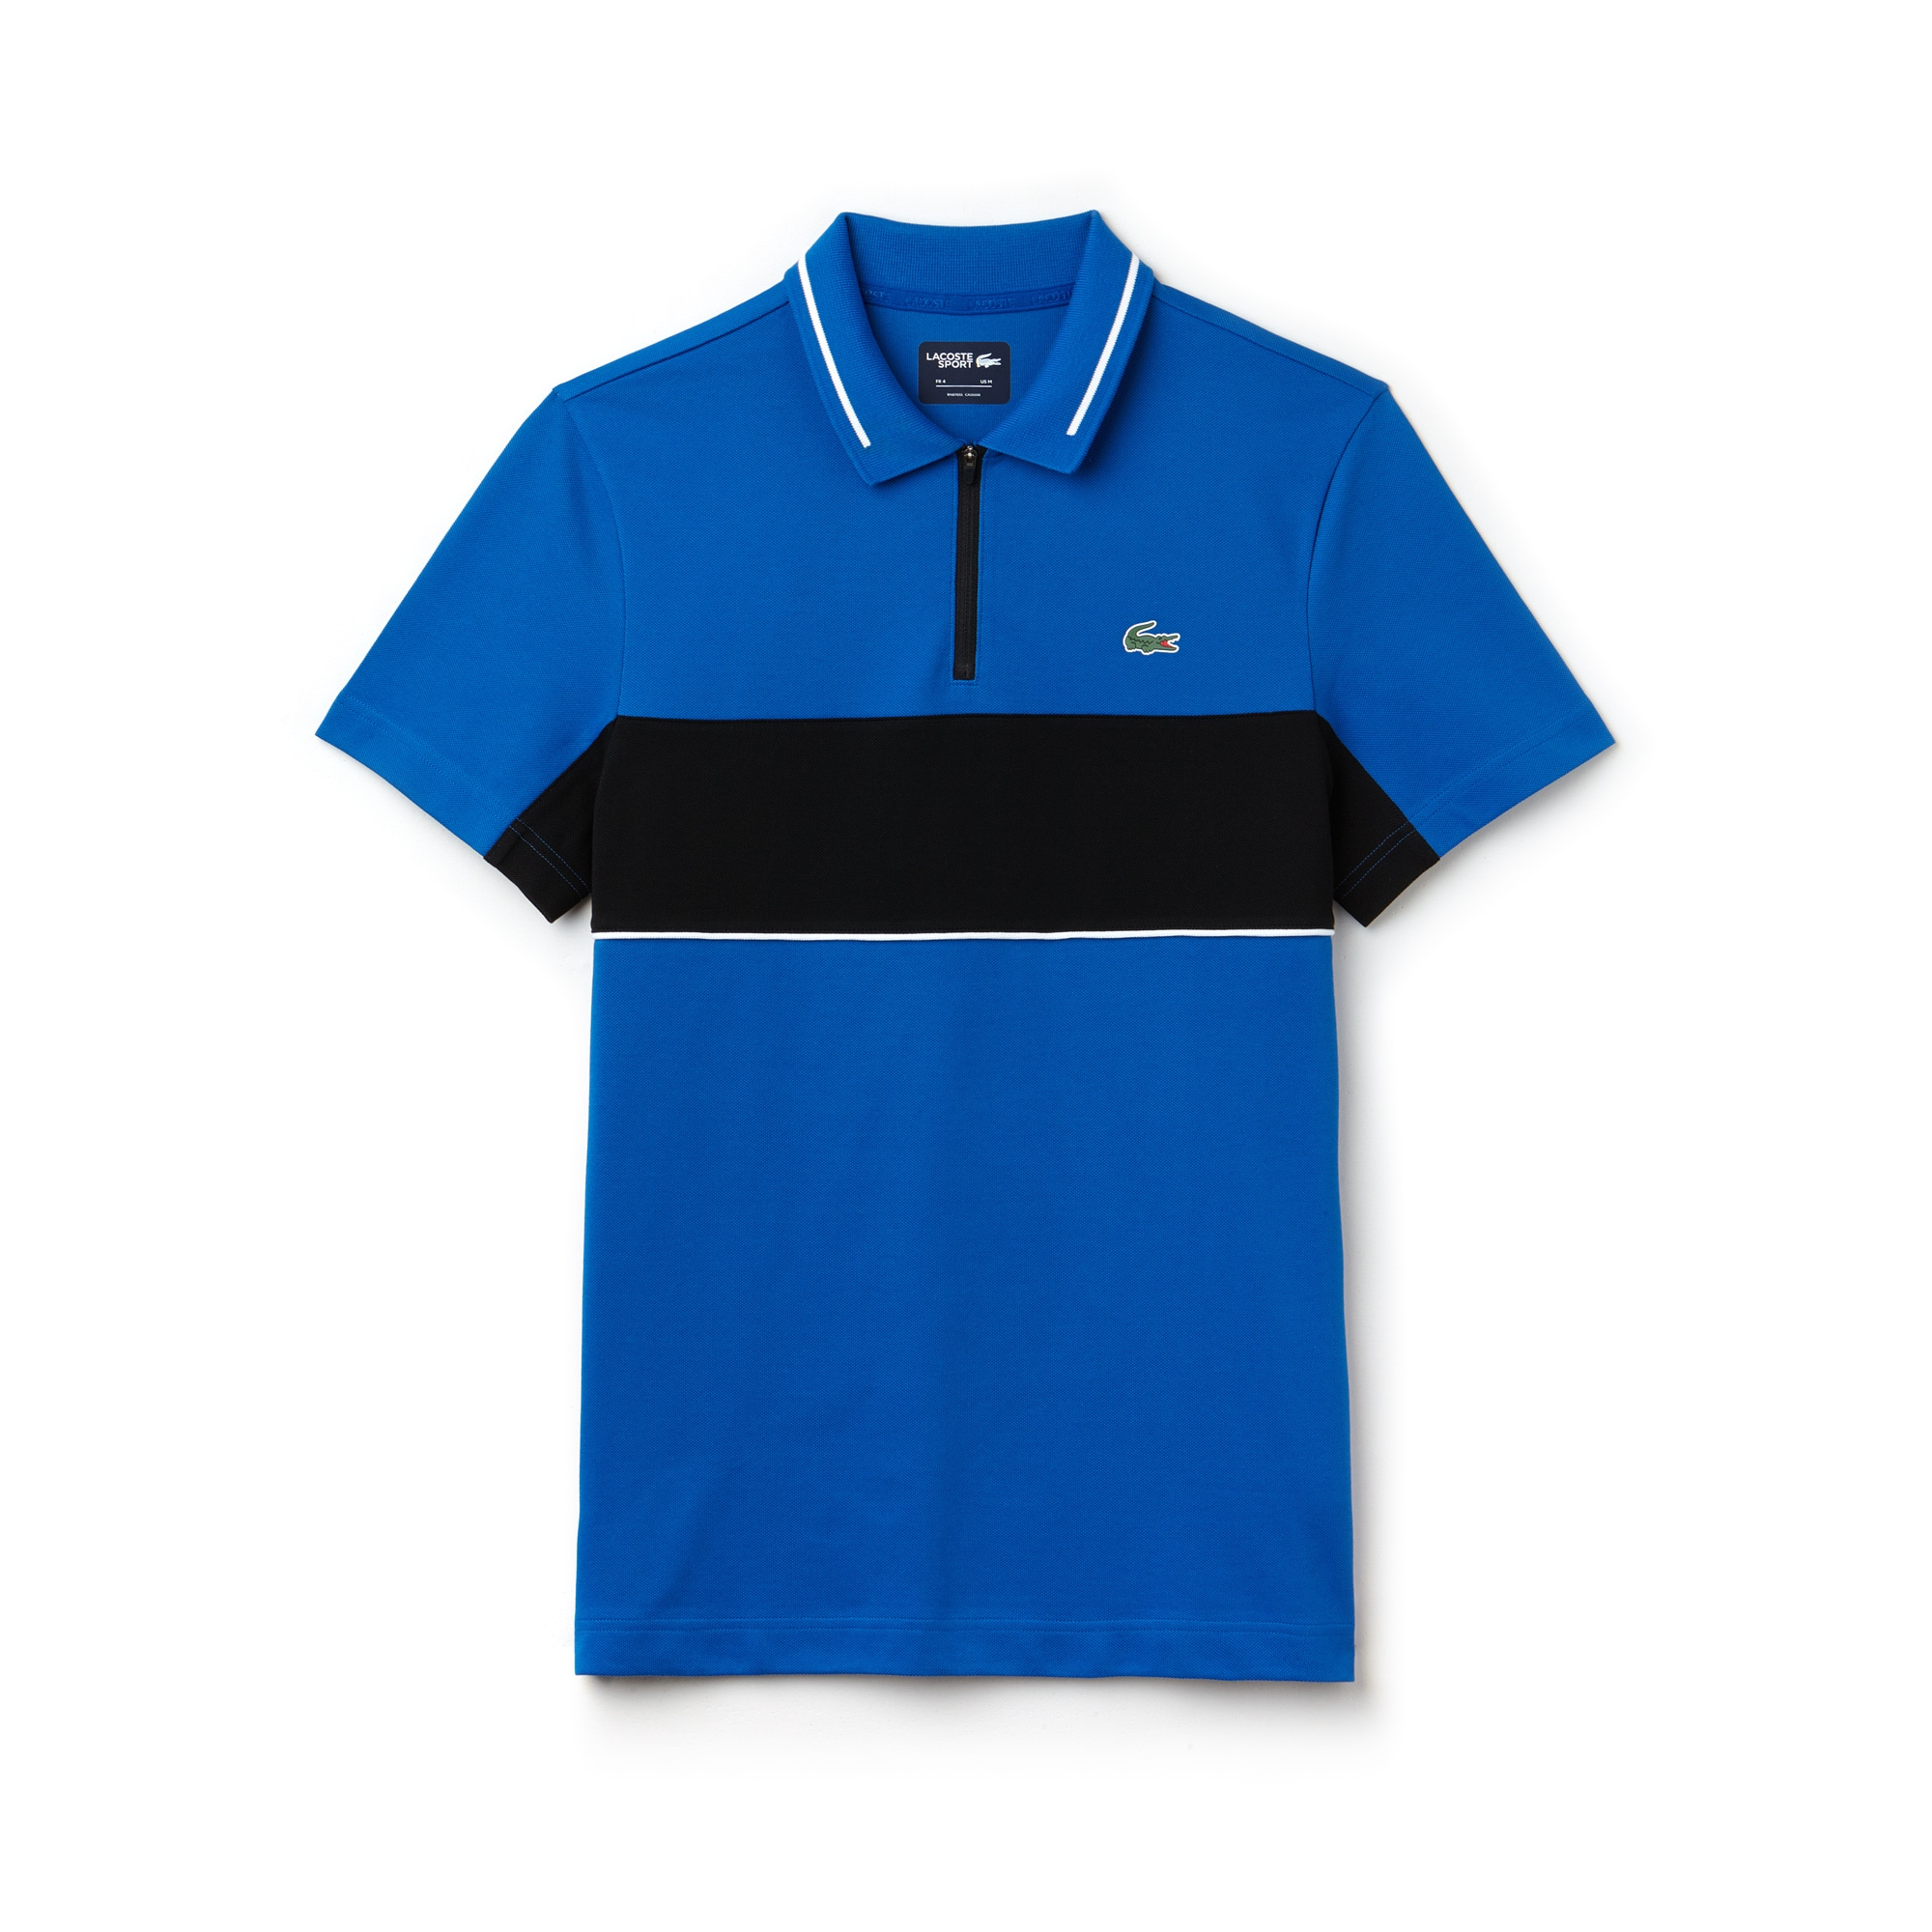 라코스테 Lacoste Mens SPORT Contrast Bands Technical Pique Golf Polo,blue royal/black-white